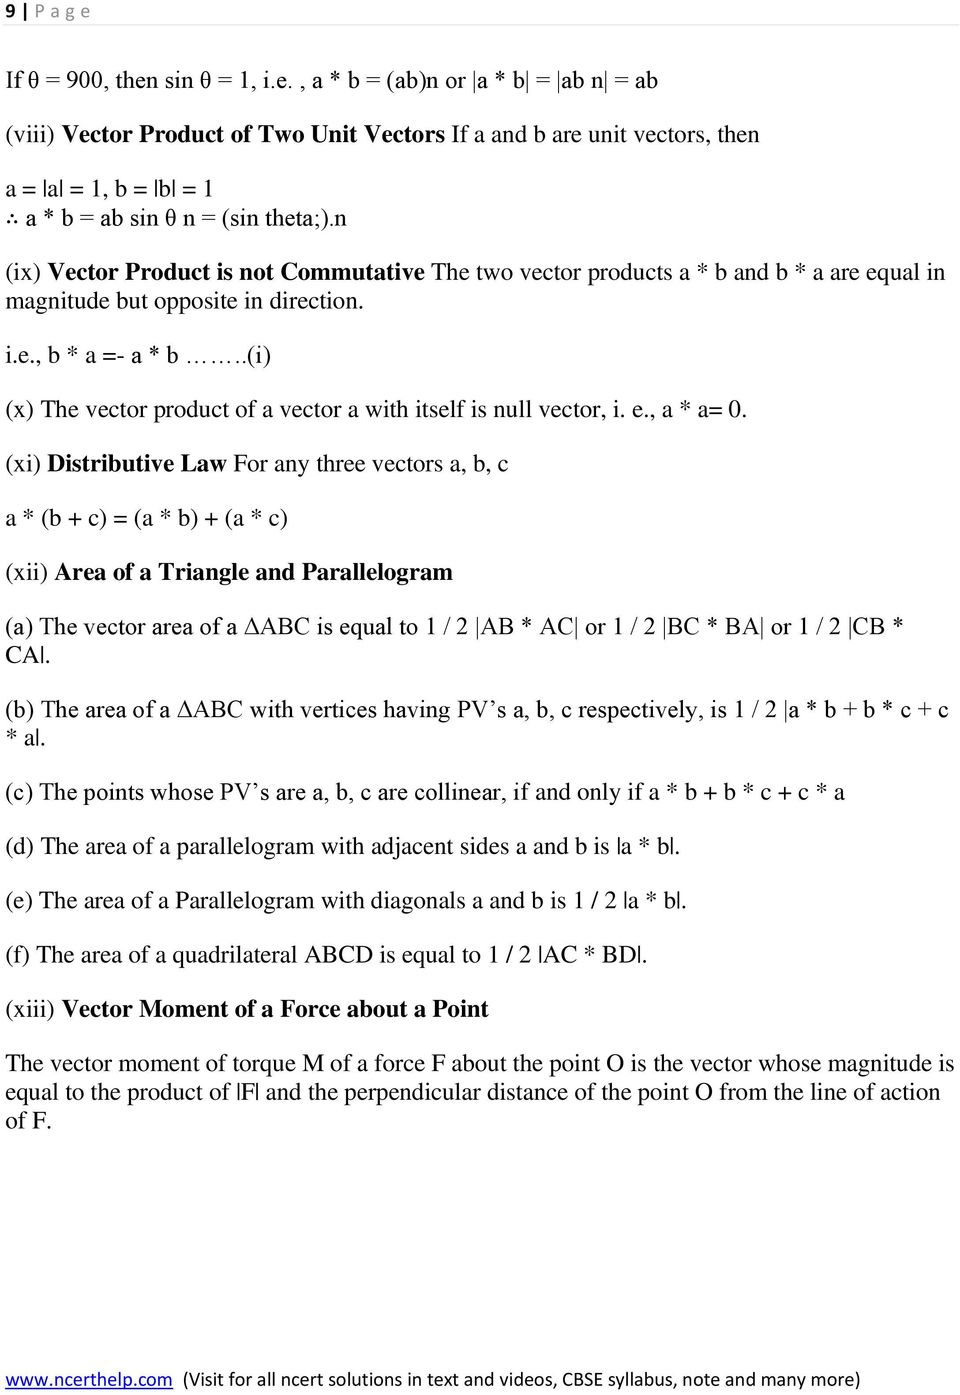 .(i) (x) The vector product of a vector a with itself is null vector, i. e., a * a= 0.